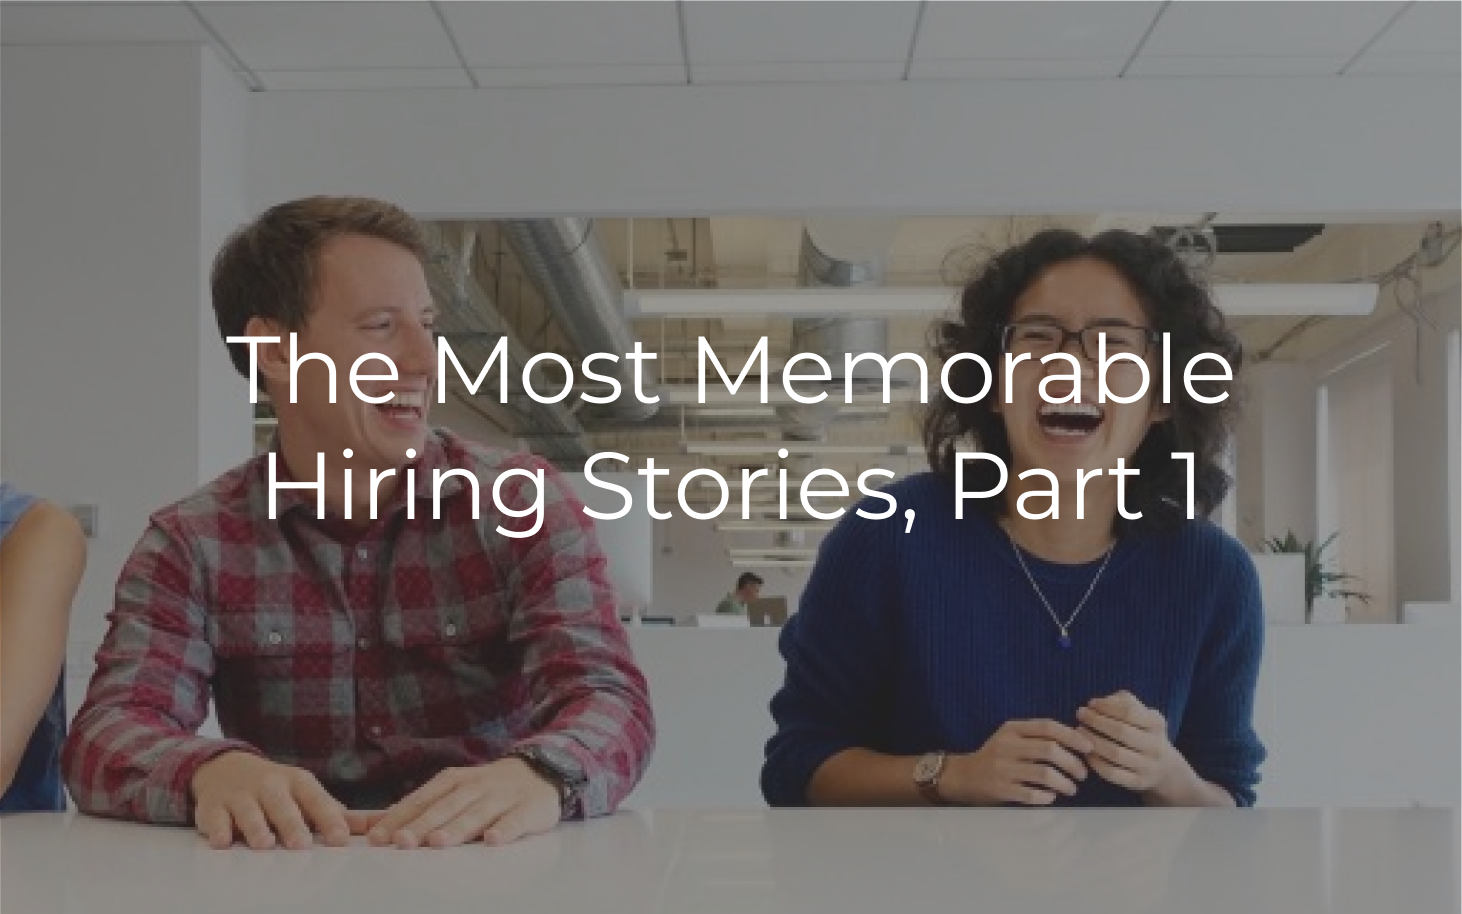 Interesting hiring stories are some of *the* most effective, and easy-to-publish content that delivers very high ROI.